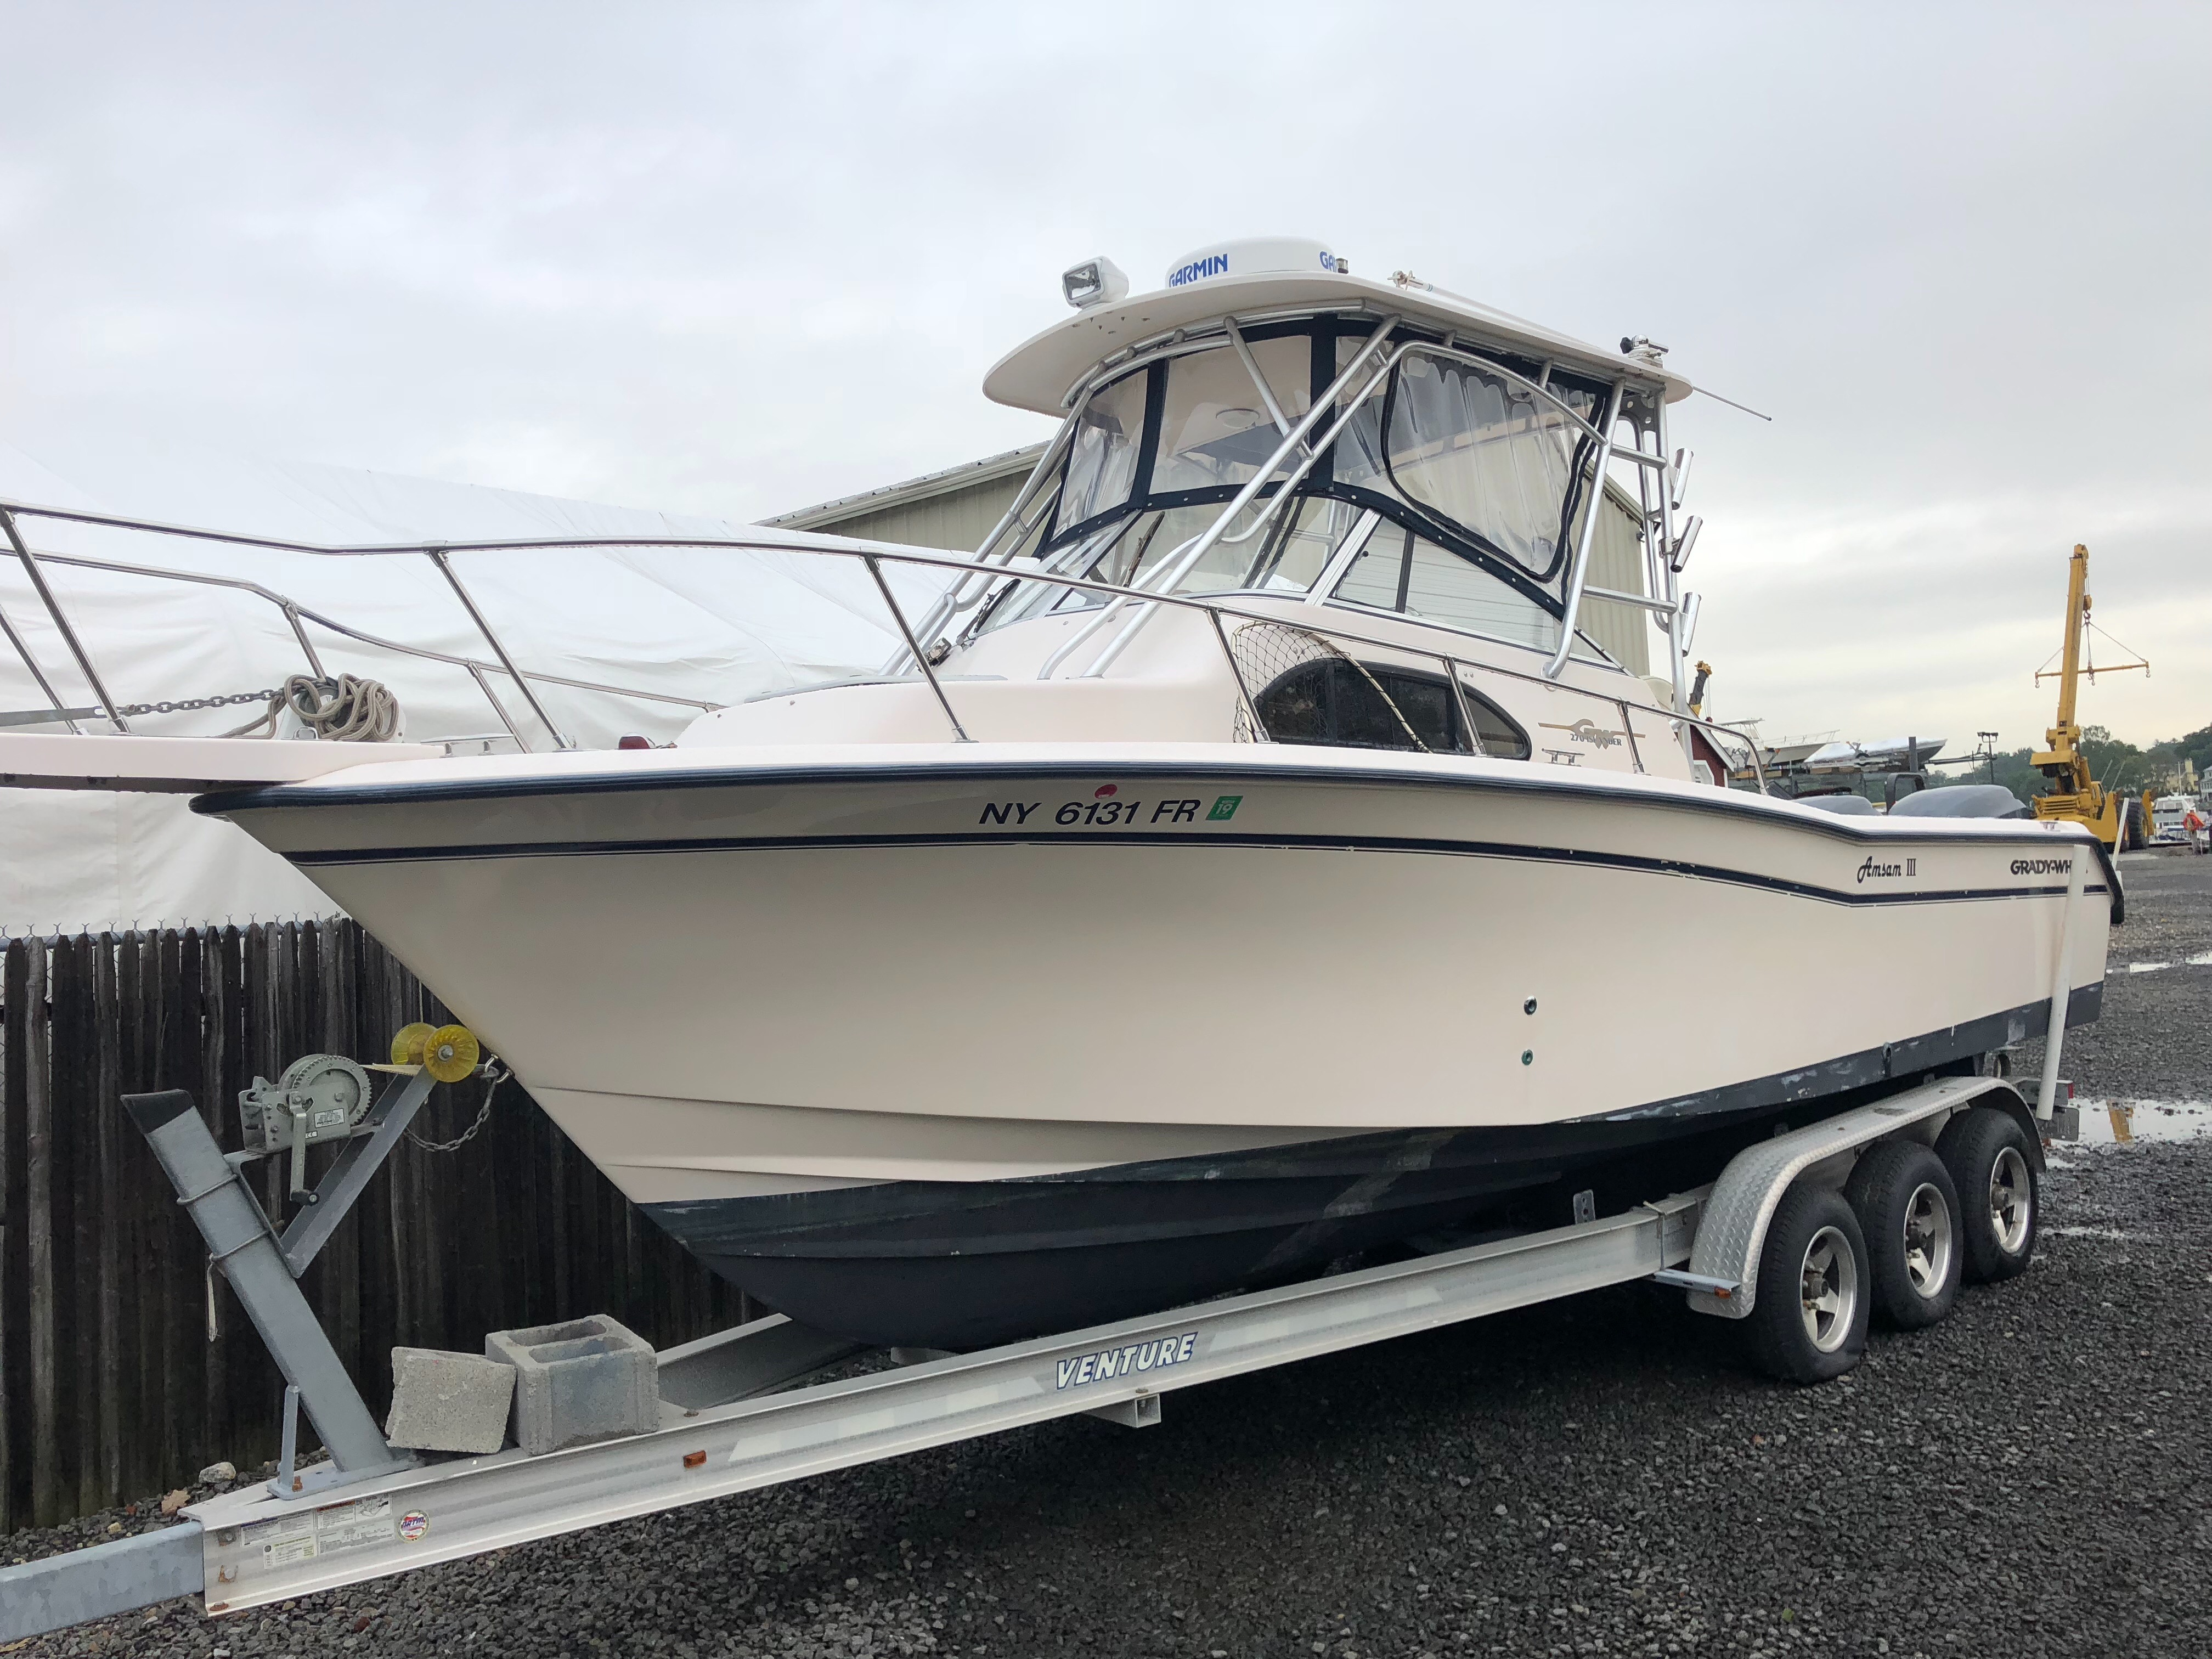 30 grady white for boat trailer guideposts free owners manual u2022 rh infomanualguide today grady white freedom 255 owners manual 1988 grady white owners manual